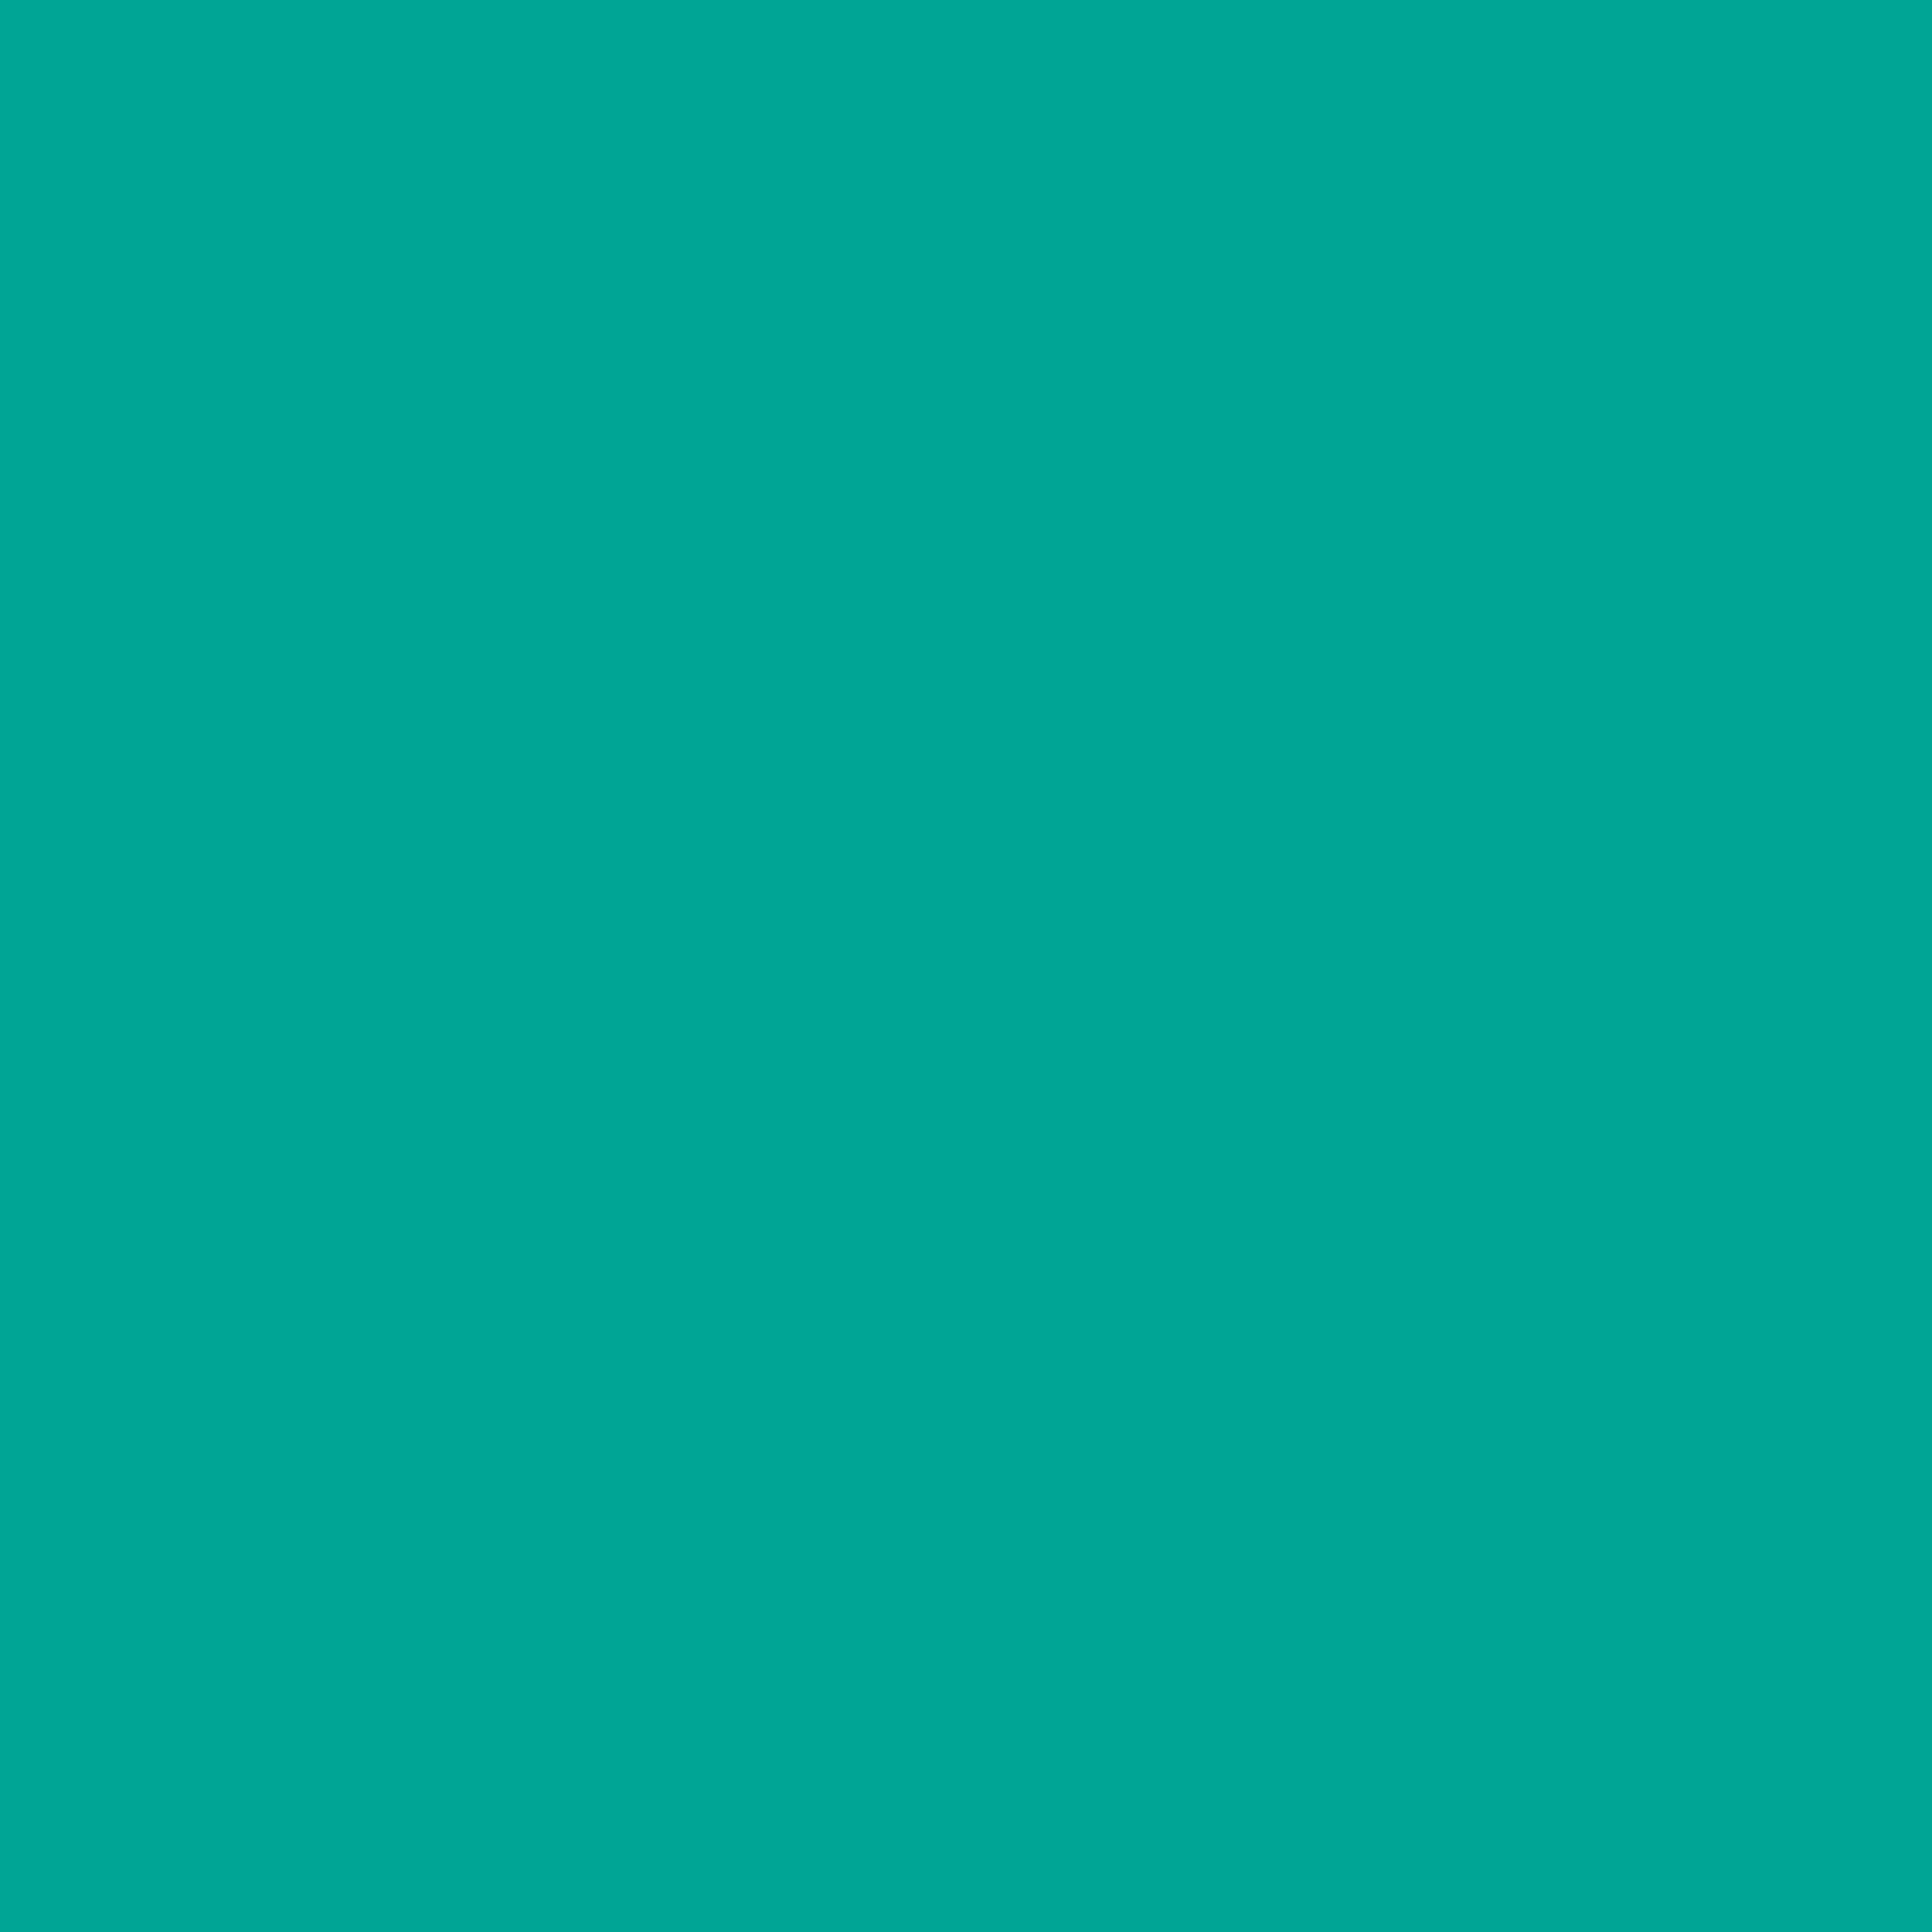 3600x3600 Persian Green Solid Color Background